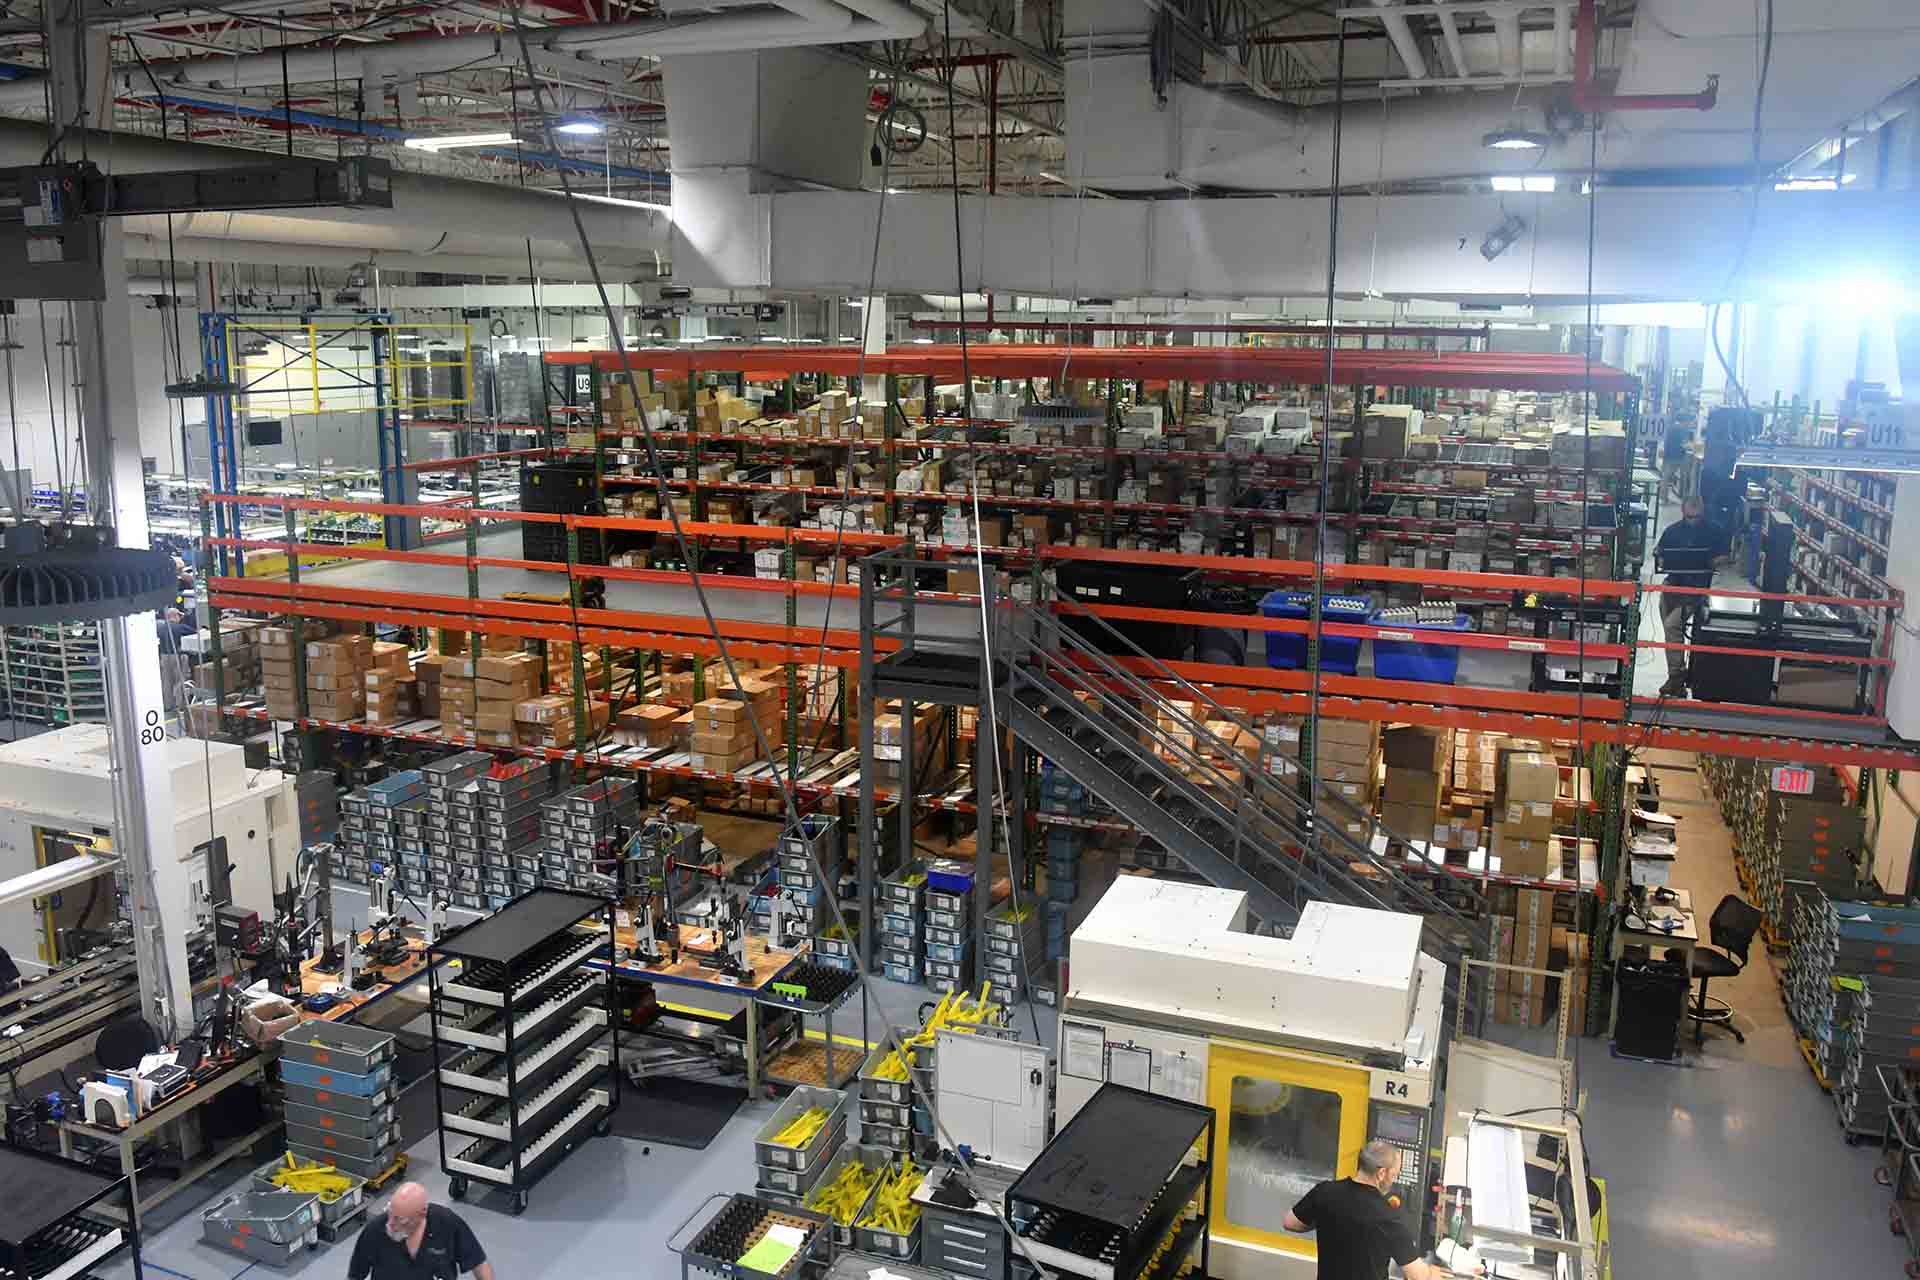 SIG Sauer USA manufacturing plant in New Hampshire, United States. Parts warehouse.